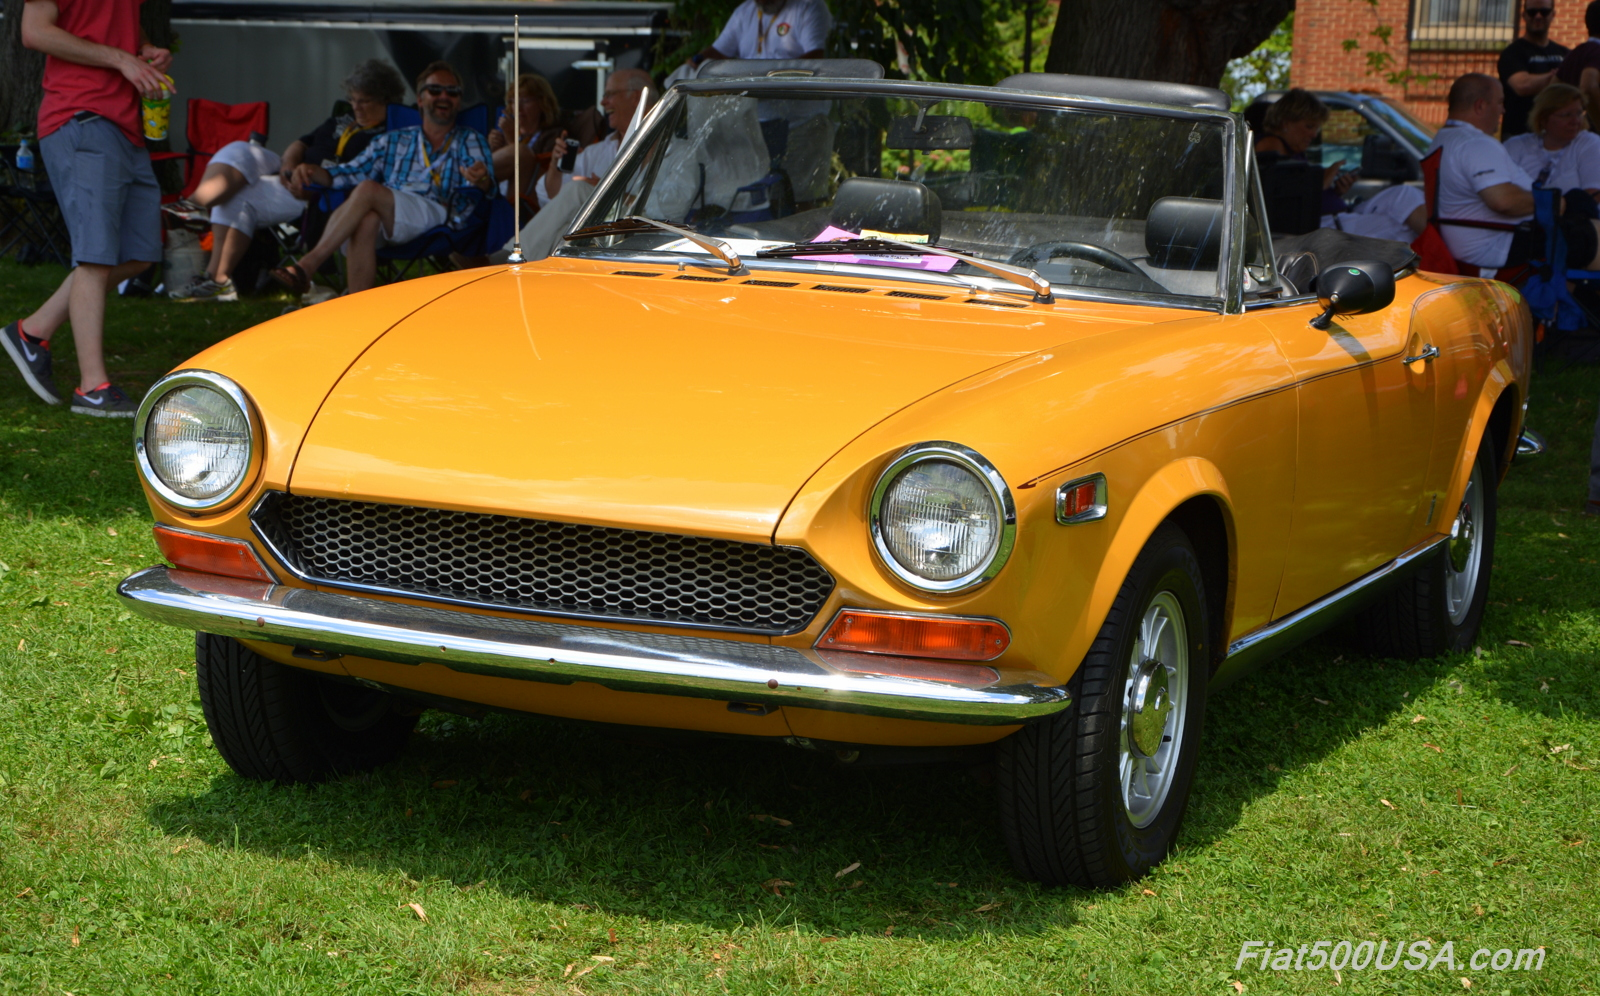 Fiat 124 Spider Celebrates 50 Years Fiat 500 Usa